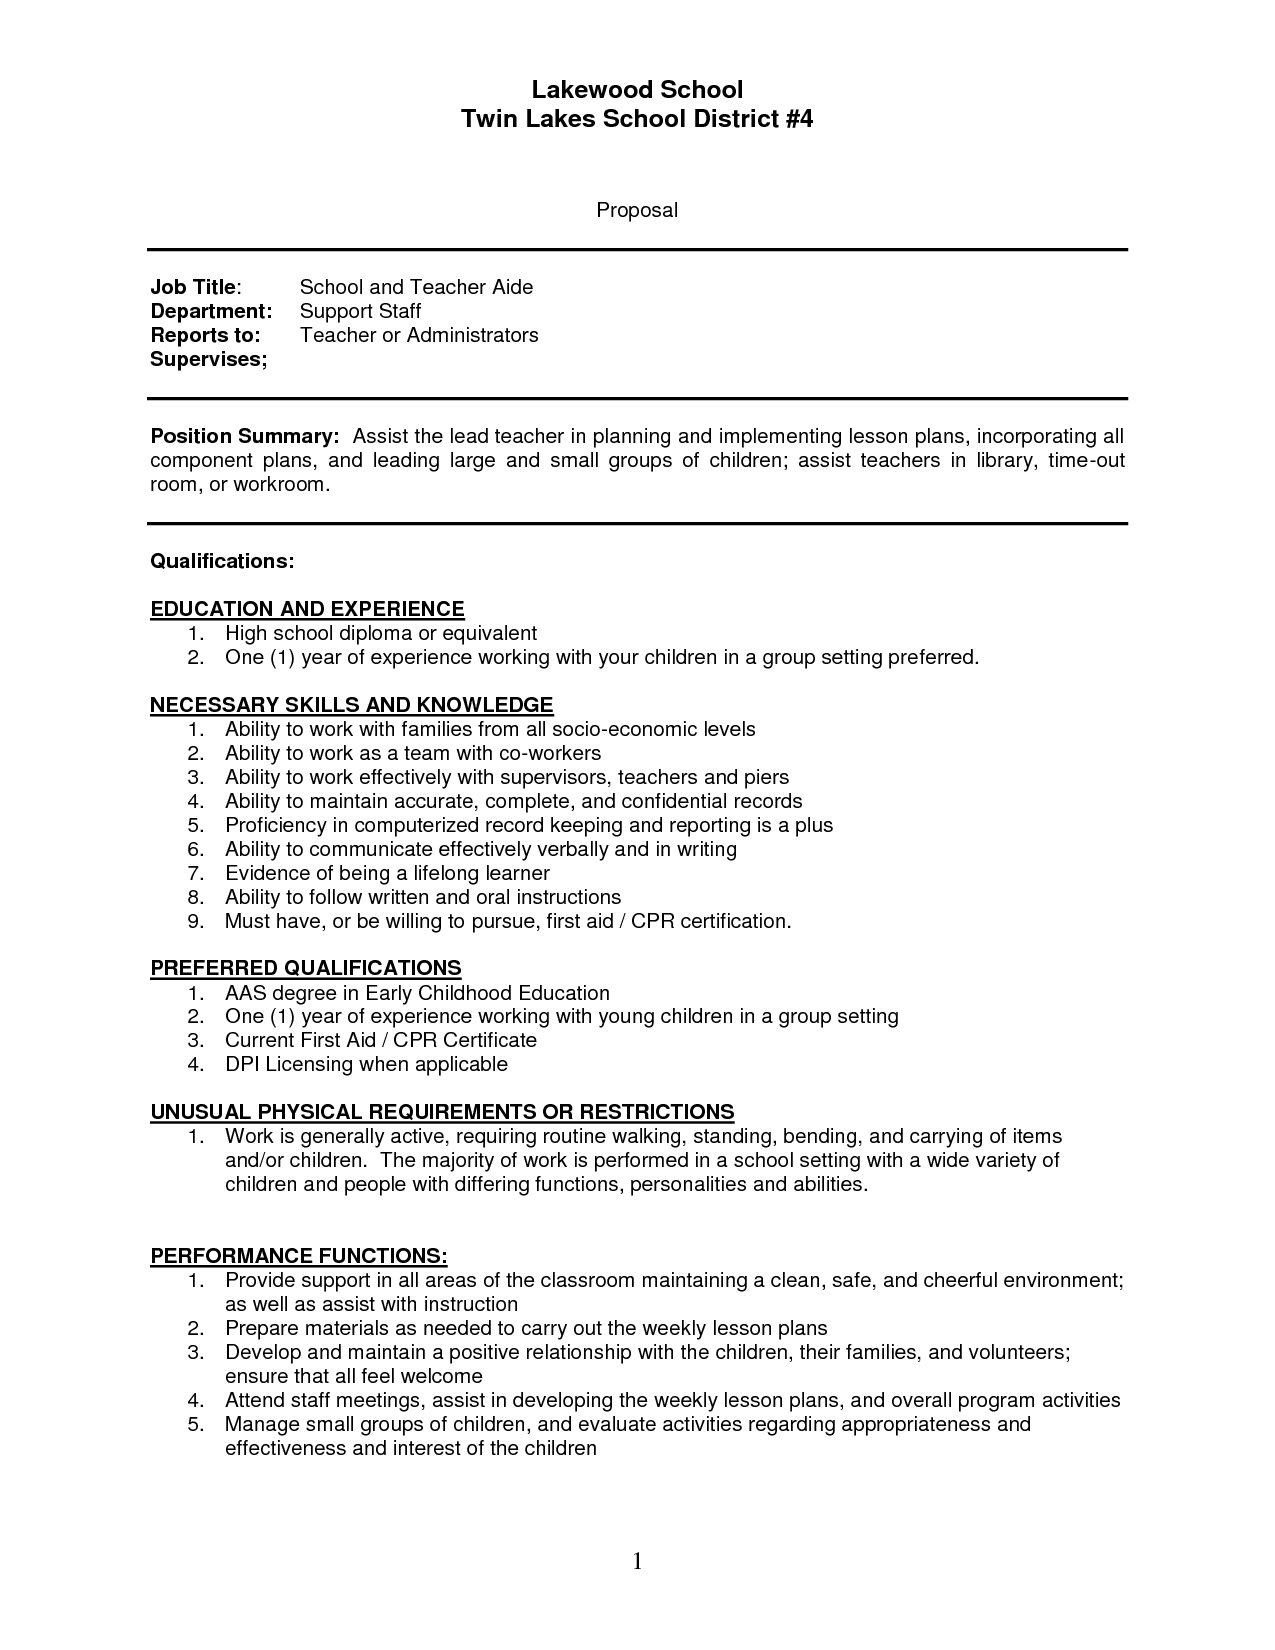 Teacher Assistant Sample Resume Sample Resume Of Teachers Aides ...   Resume  For Teacher  Experienced Teacher Resume Samples